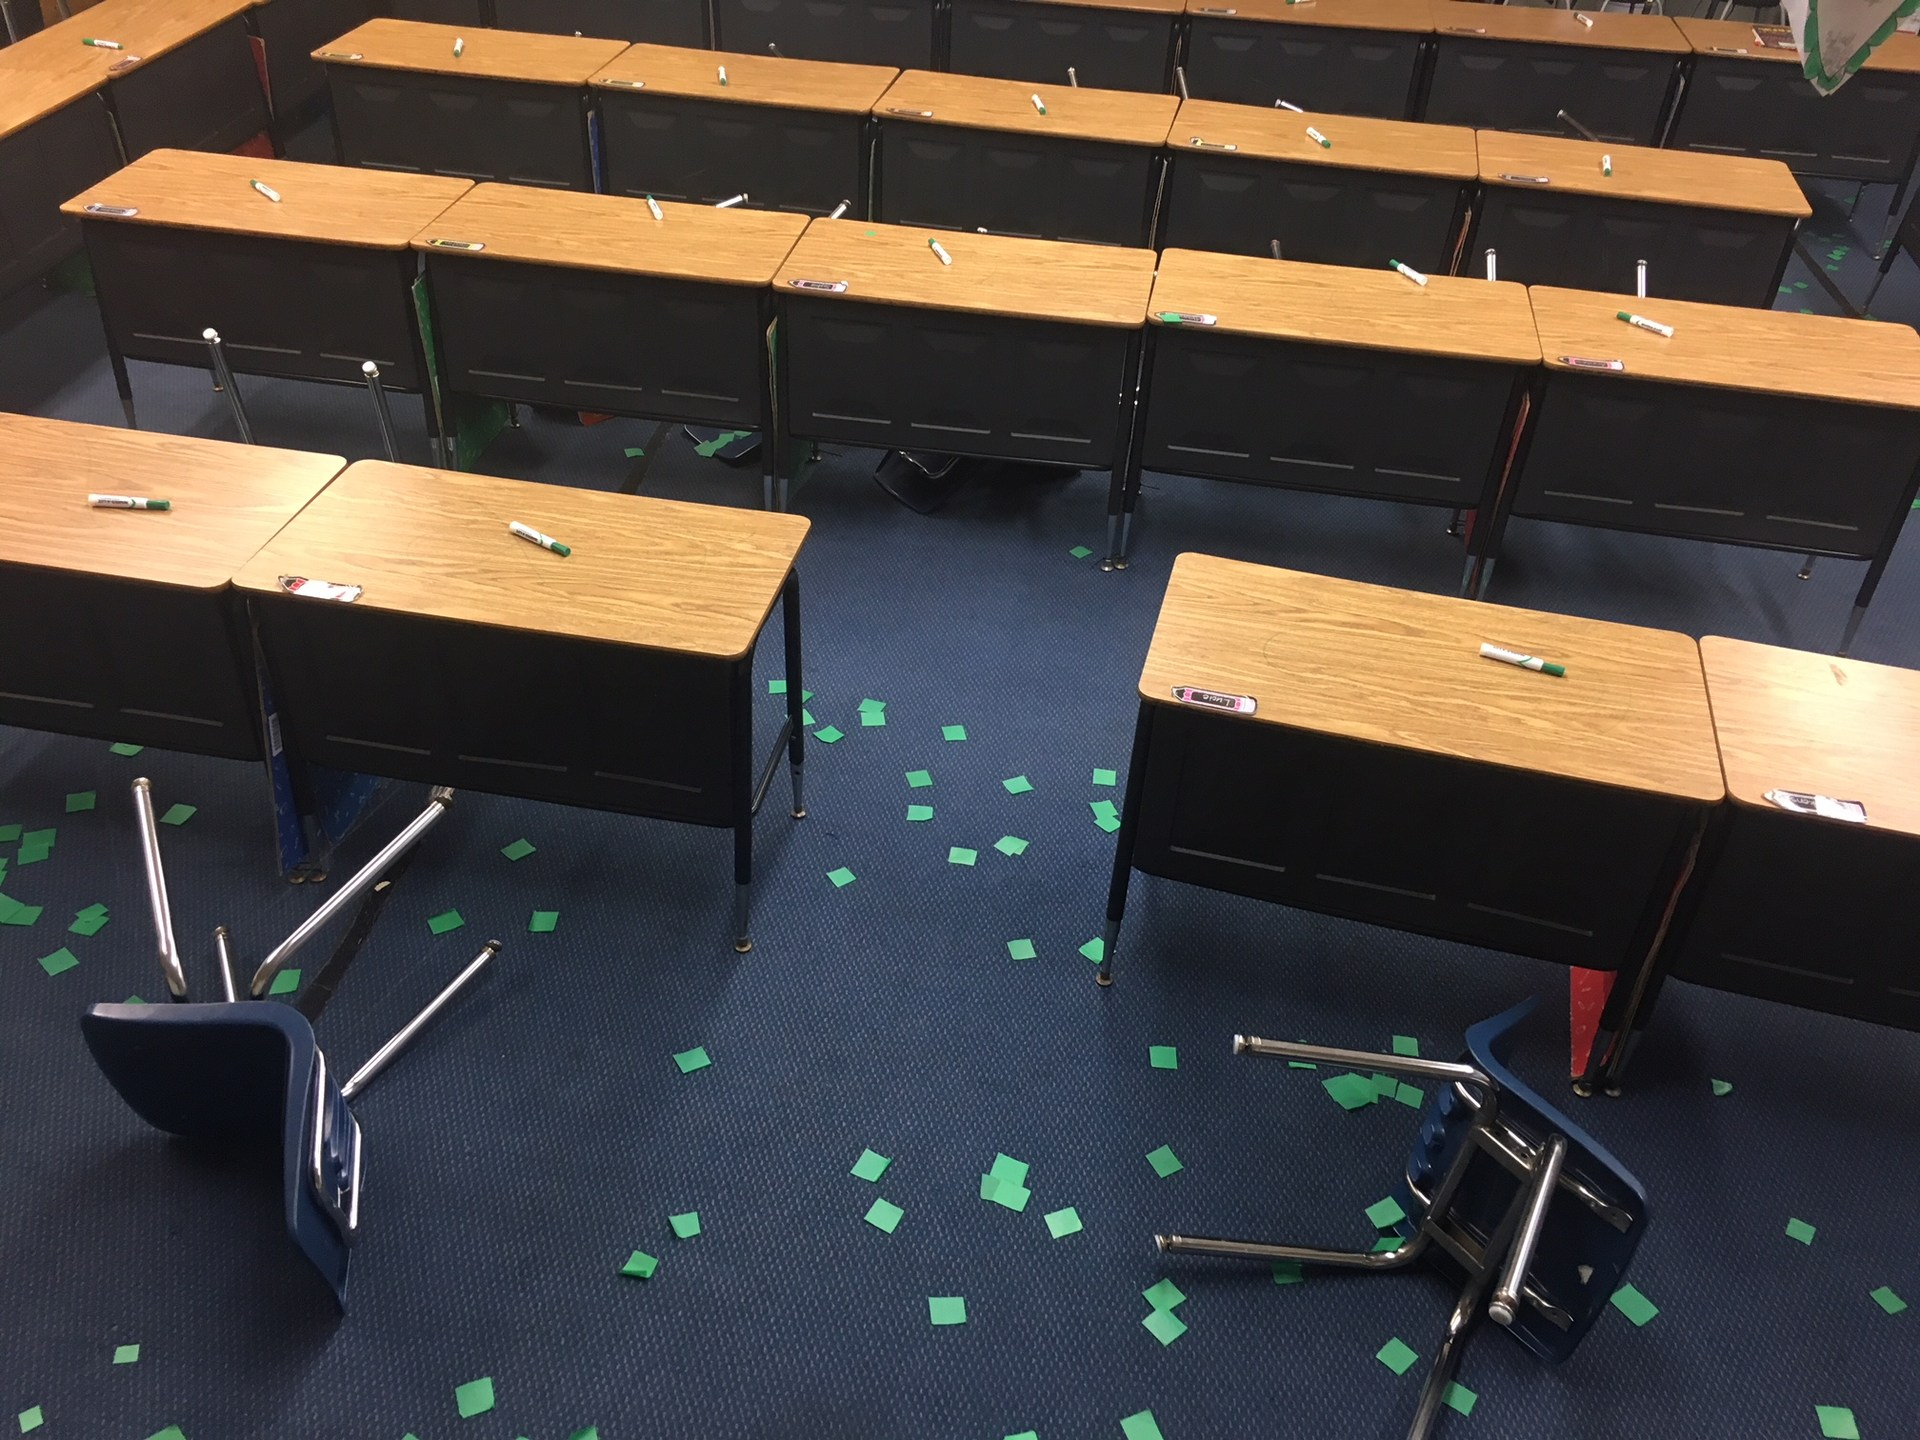 The Leprechauns got to our classroom!